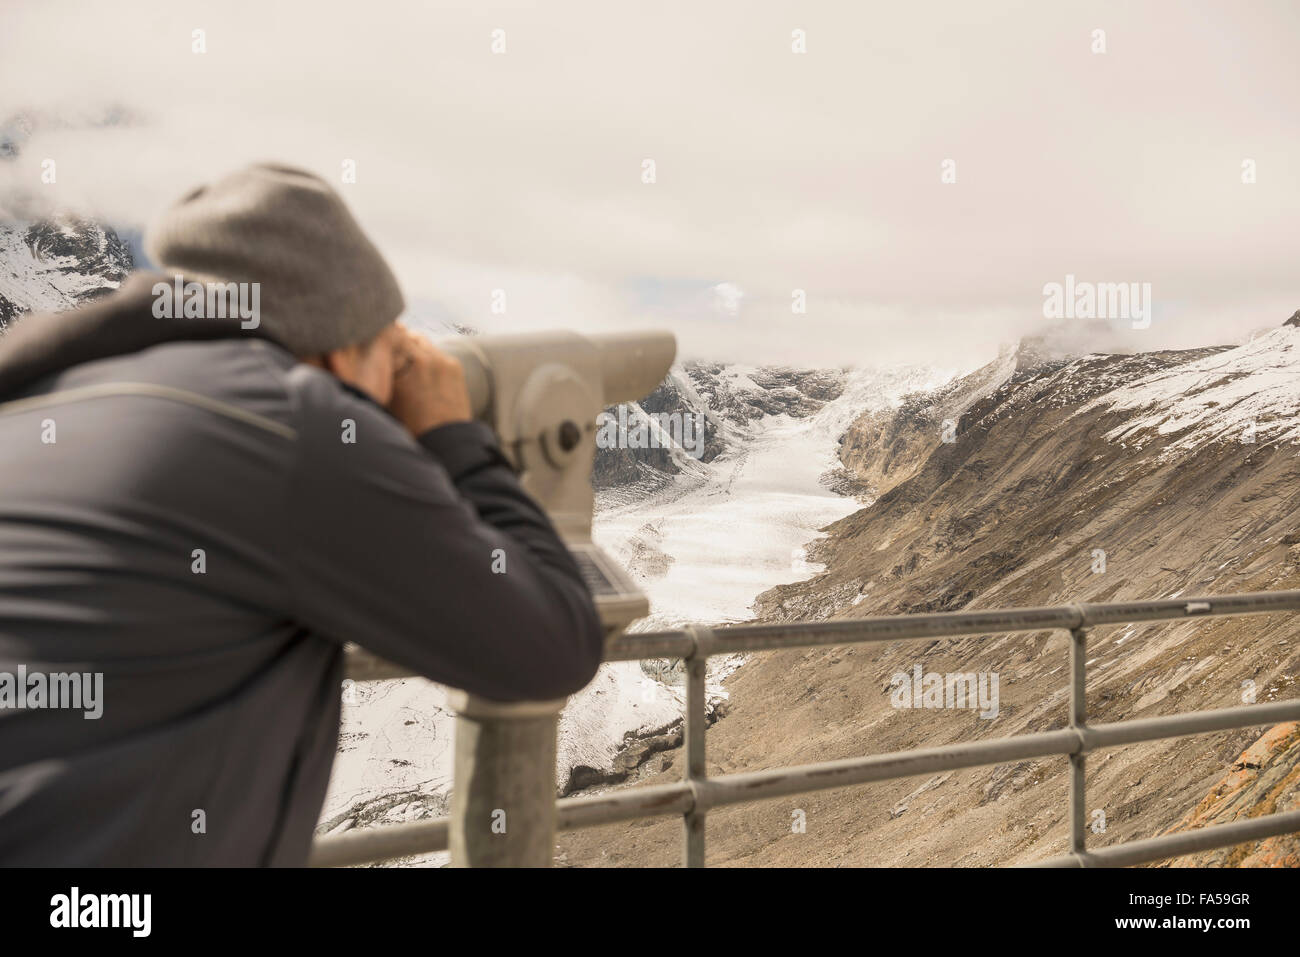 Mature man looking at view with telescope, Pasterze glacier, National Park Hohe Tauern, Carinthia, Austria - Stock Image